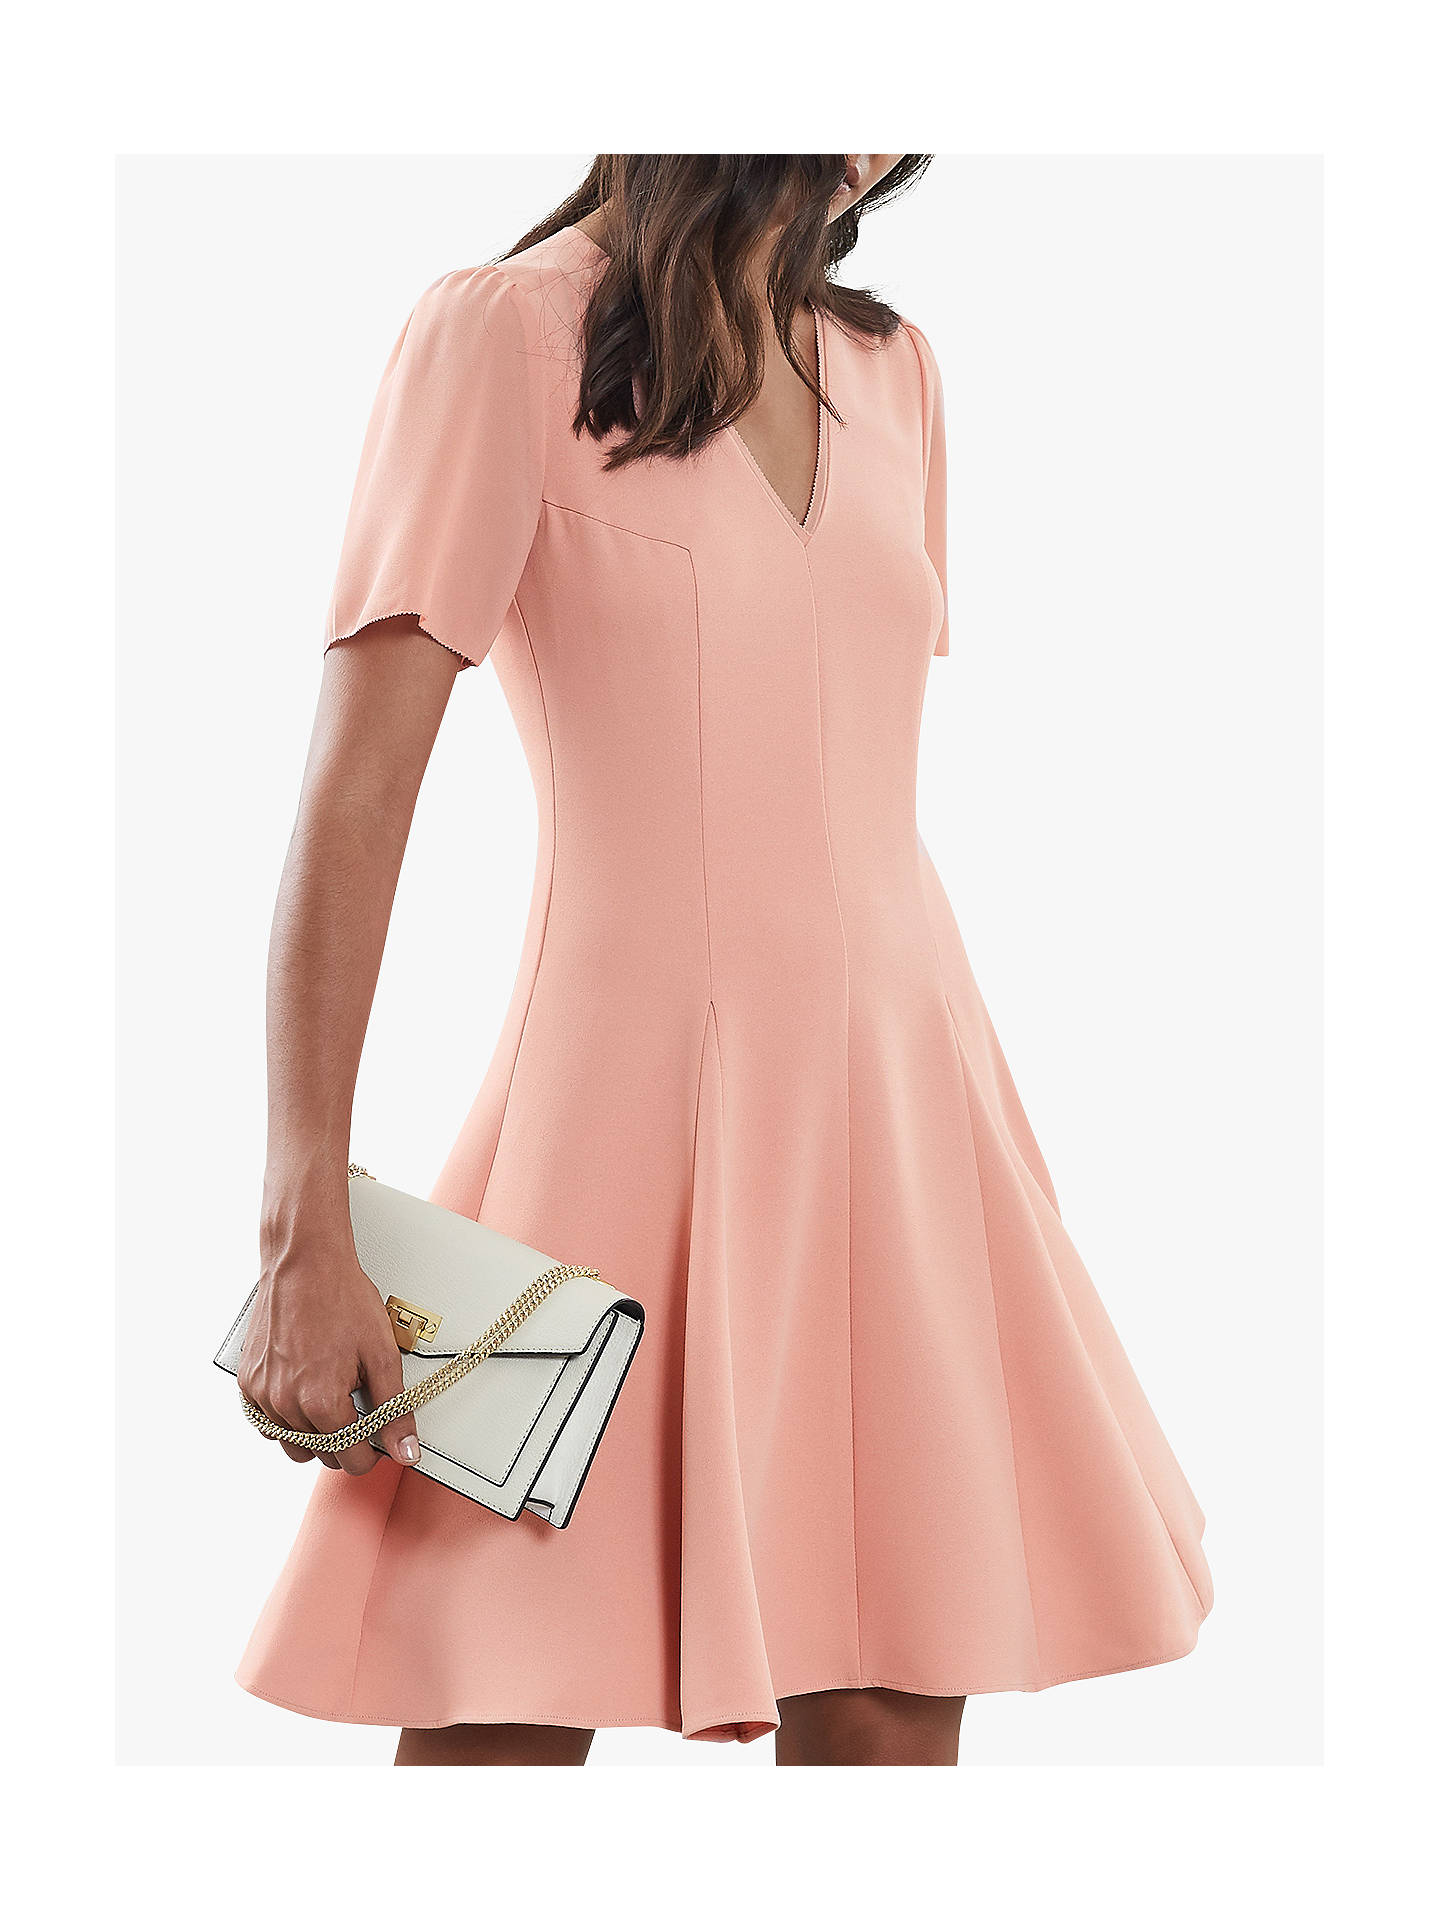 BuyReiss Seamed Sleeve Dress, Pale Pink, 6 Online at johnlewis.com